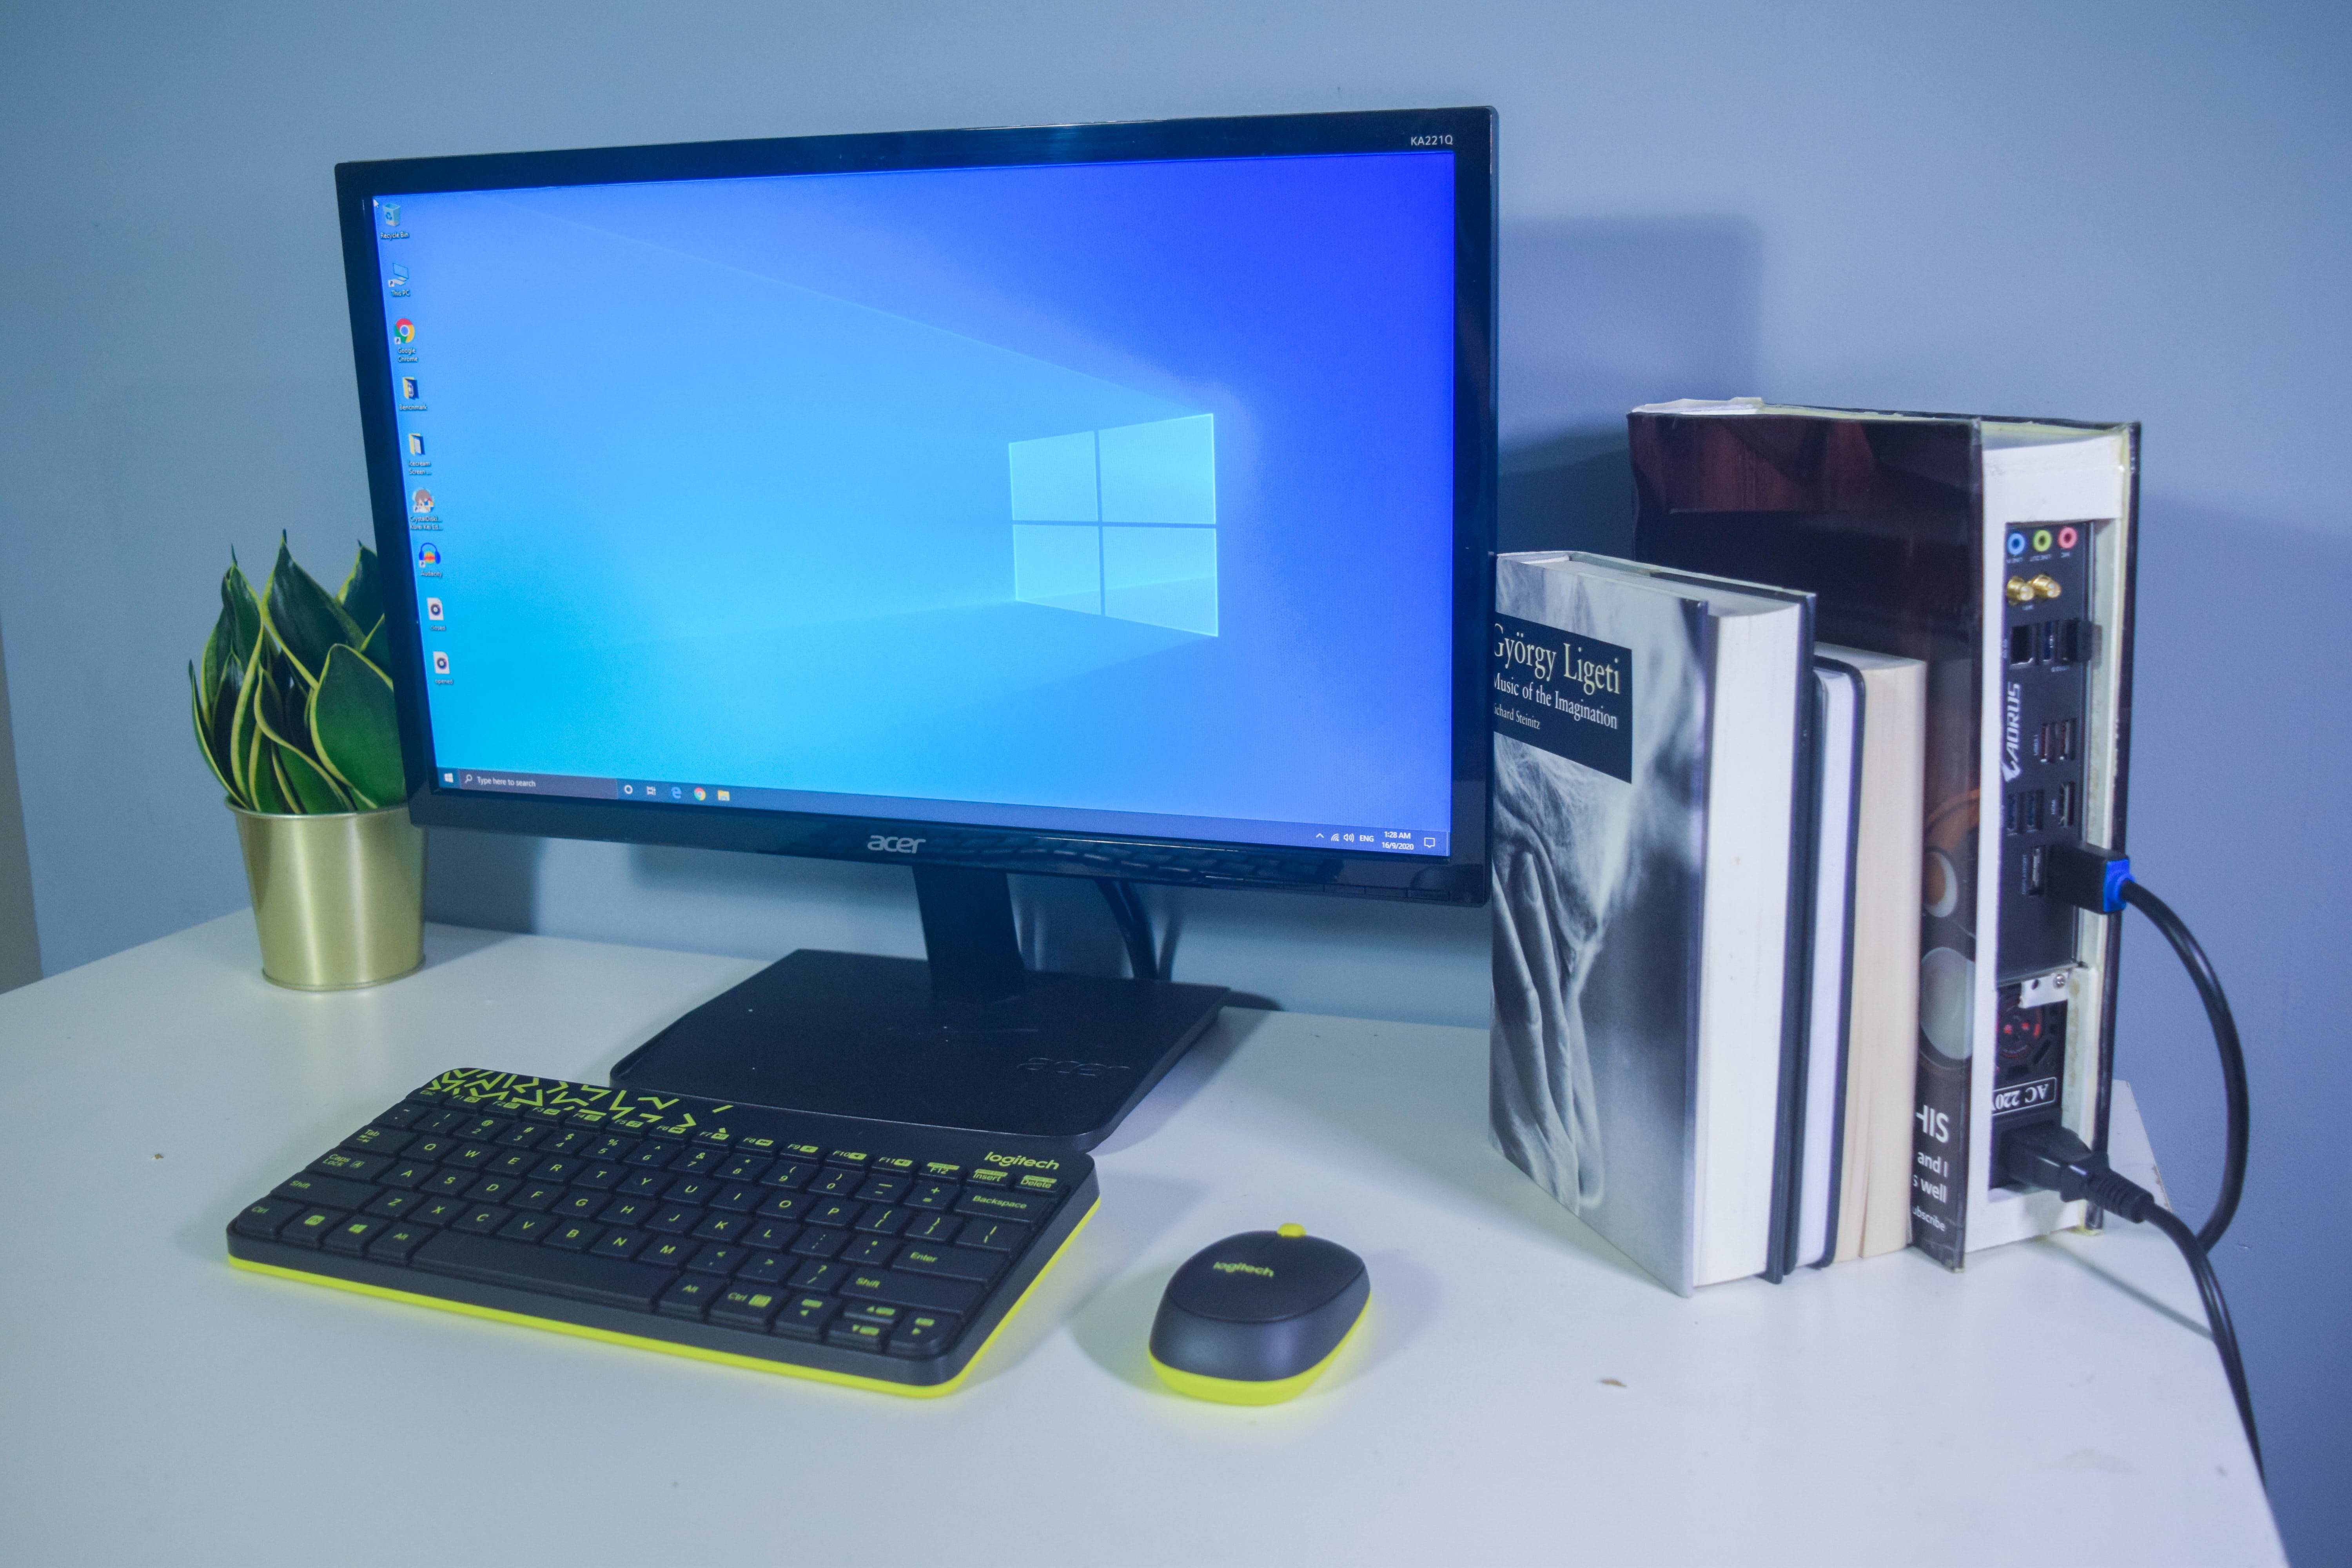 itisnutella's Setup - DIY Book PC Case | Scooget